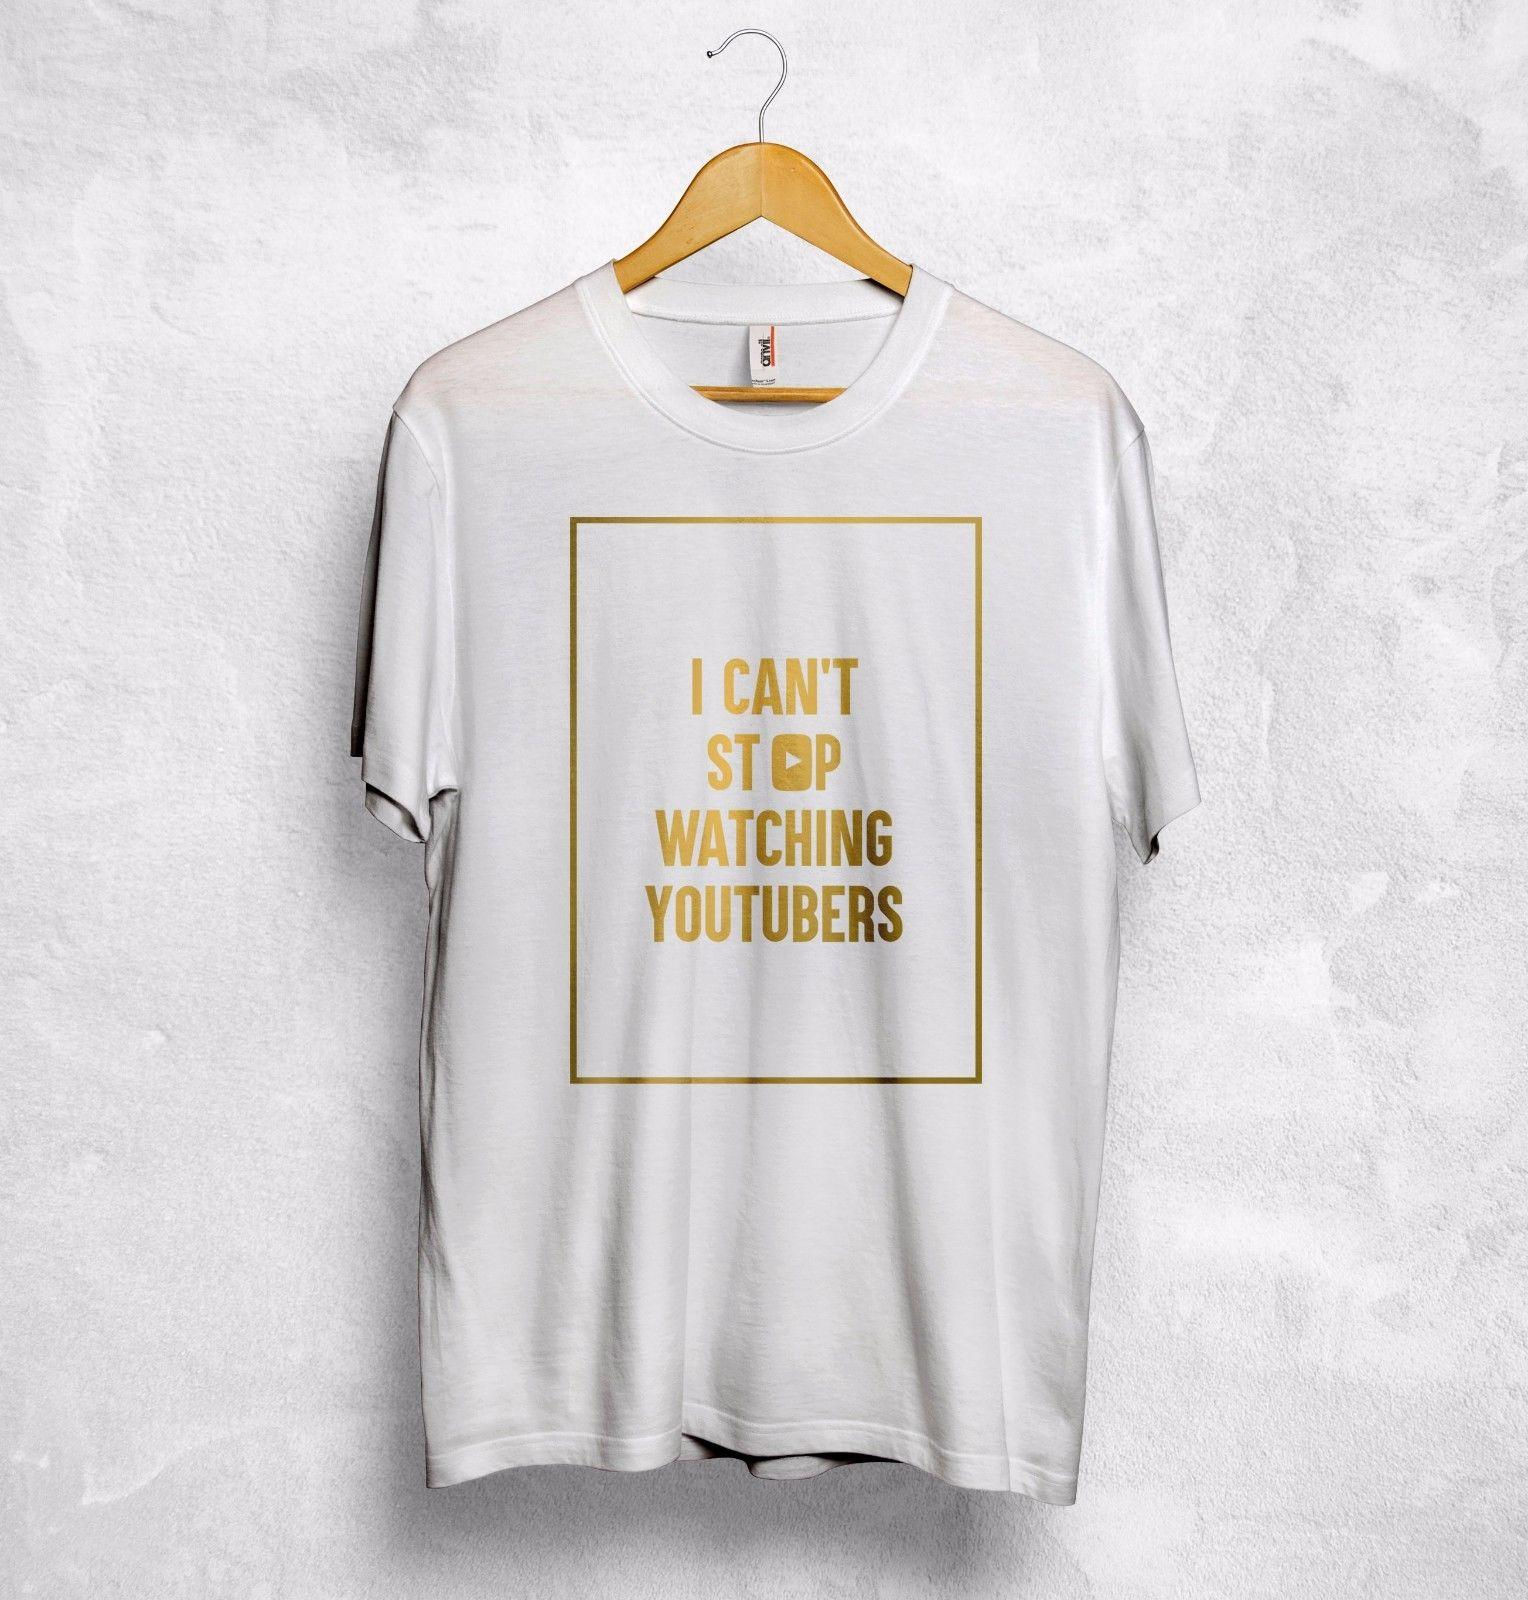 4a153437dff I Cant Stop Watching YouTubers T Shirt Top YouTube PewDiePie Jenna Marbles  Gift Funny Unisex Tee T Shirts With Prints Humorous Shirts From Stshirt, ...